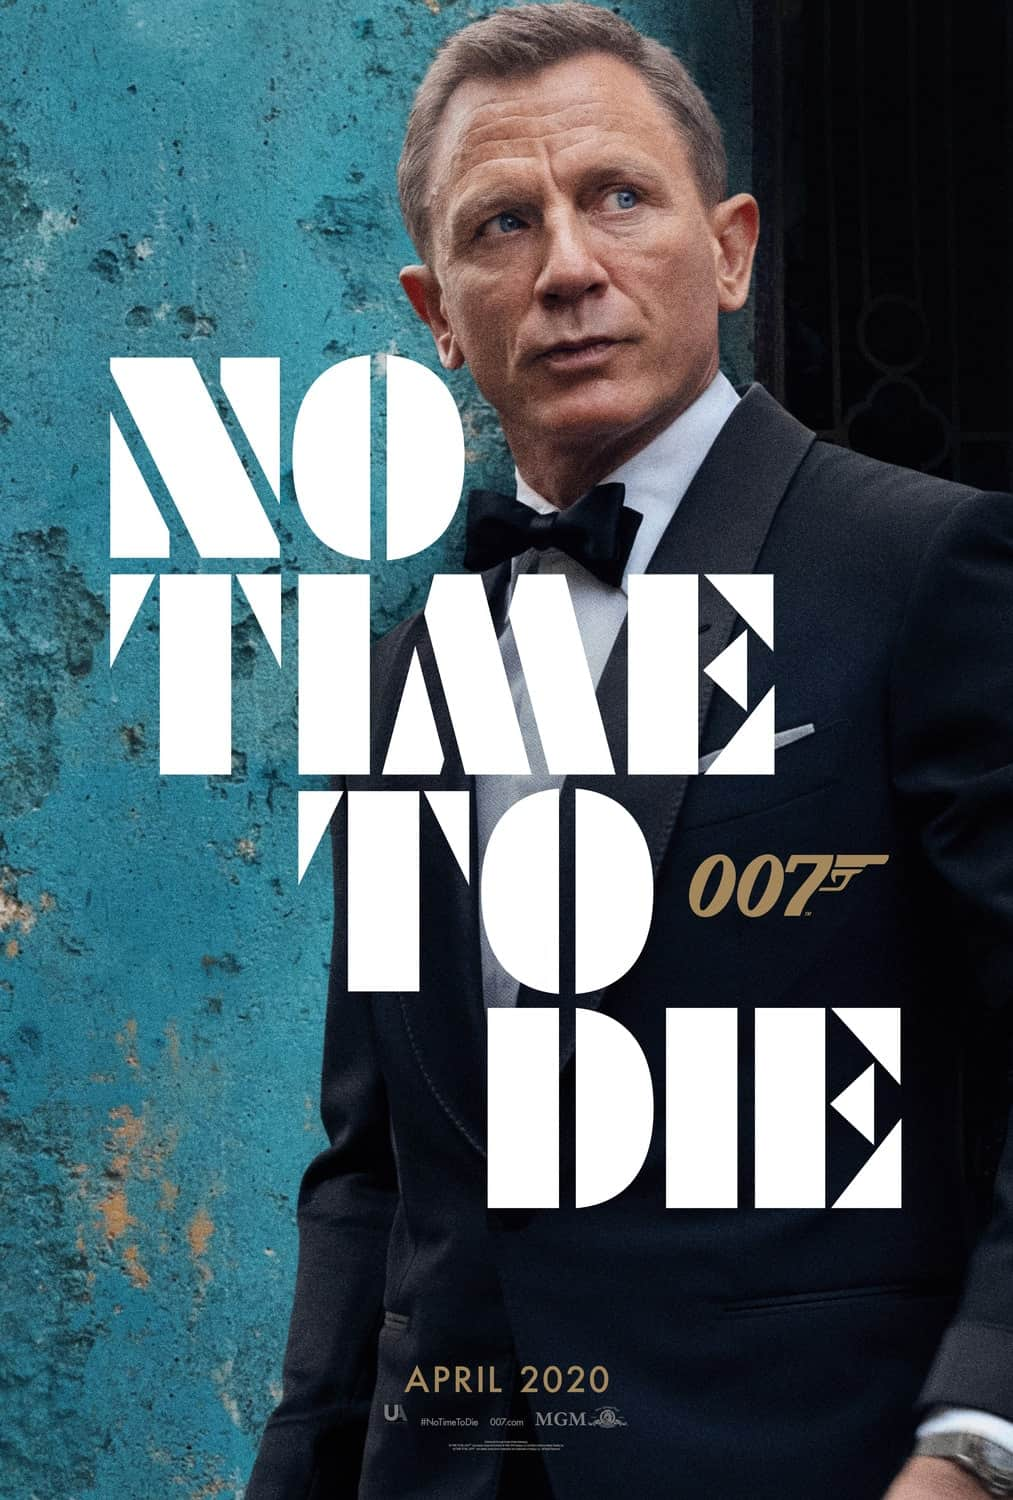 No Time To Die Poster 007 James Bond Movie